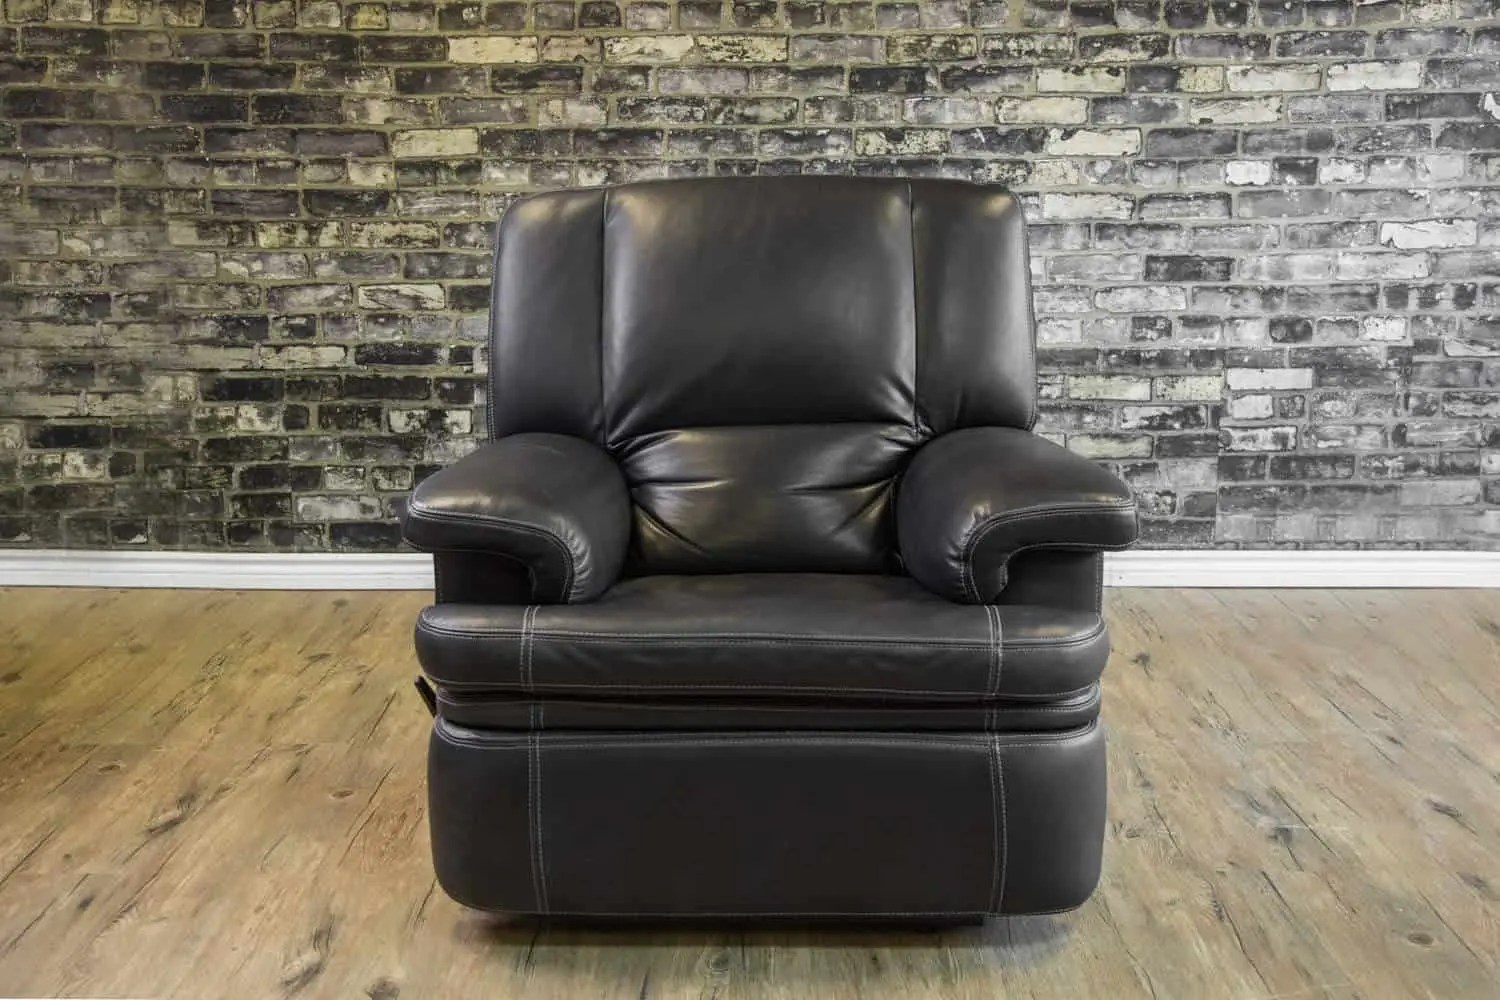 Leather Recliner Chairs Canada The Denmark Leather Reclining Chair Collection Canada 39s